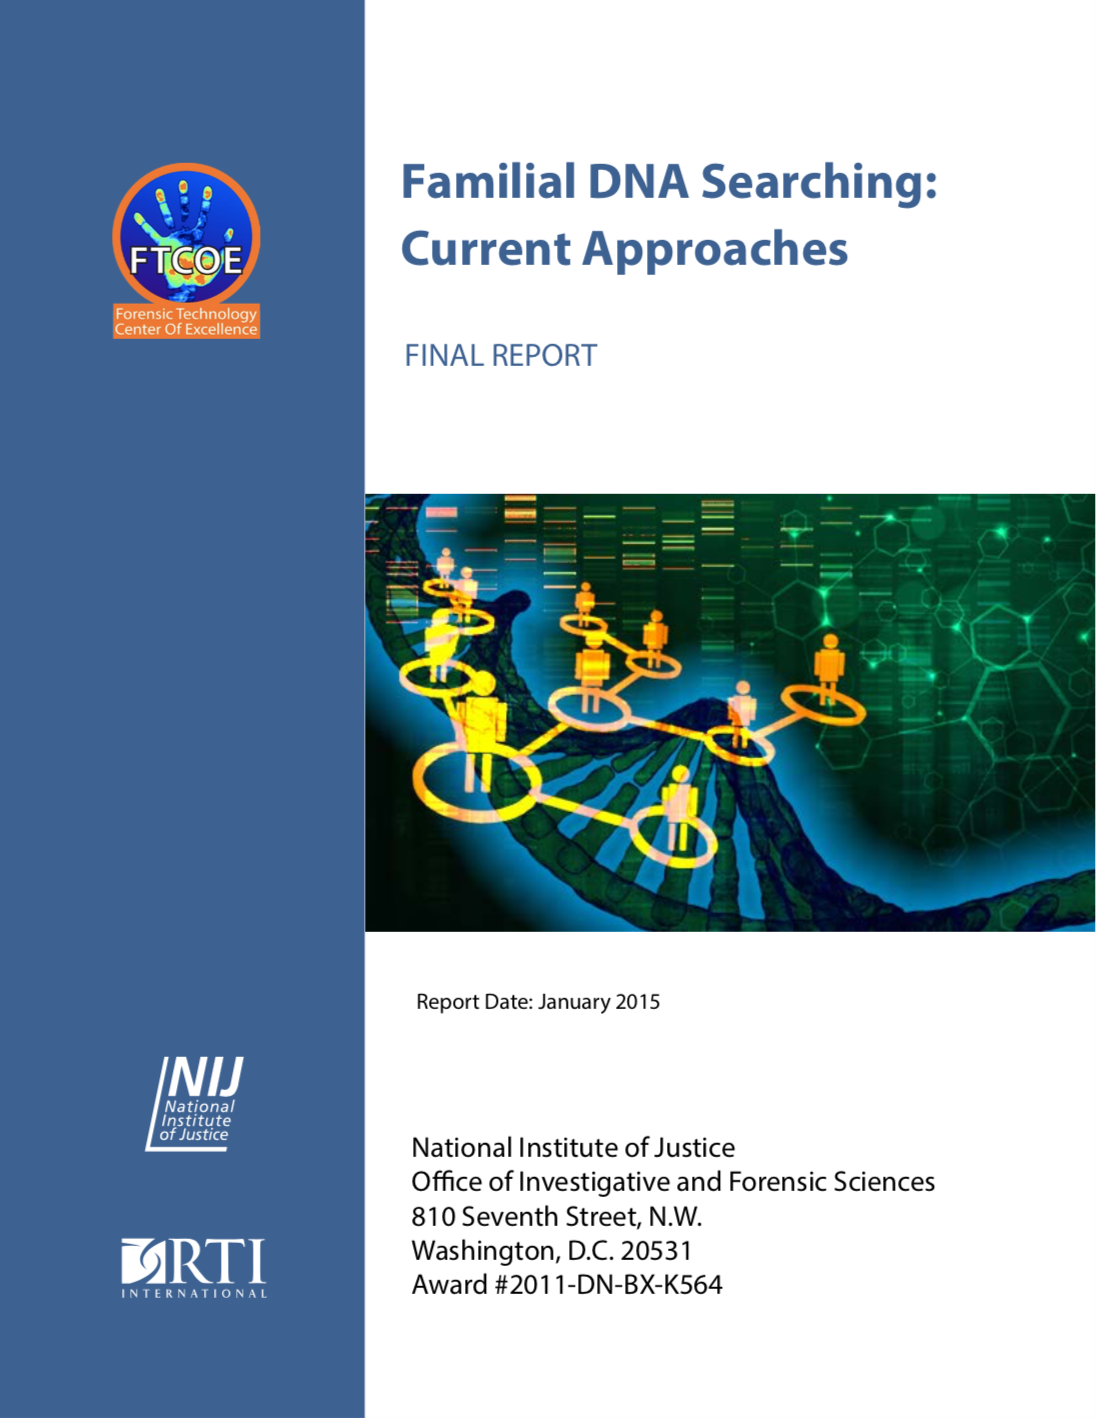 2015 Report on Familial DNA Search Approaches (Click Image to View)